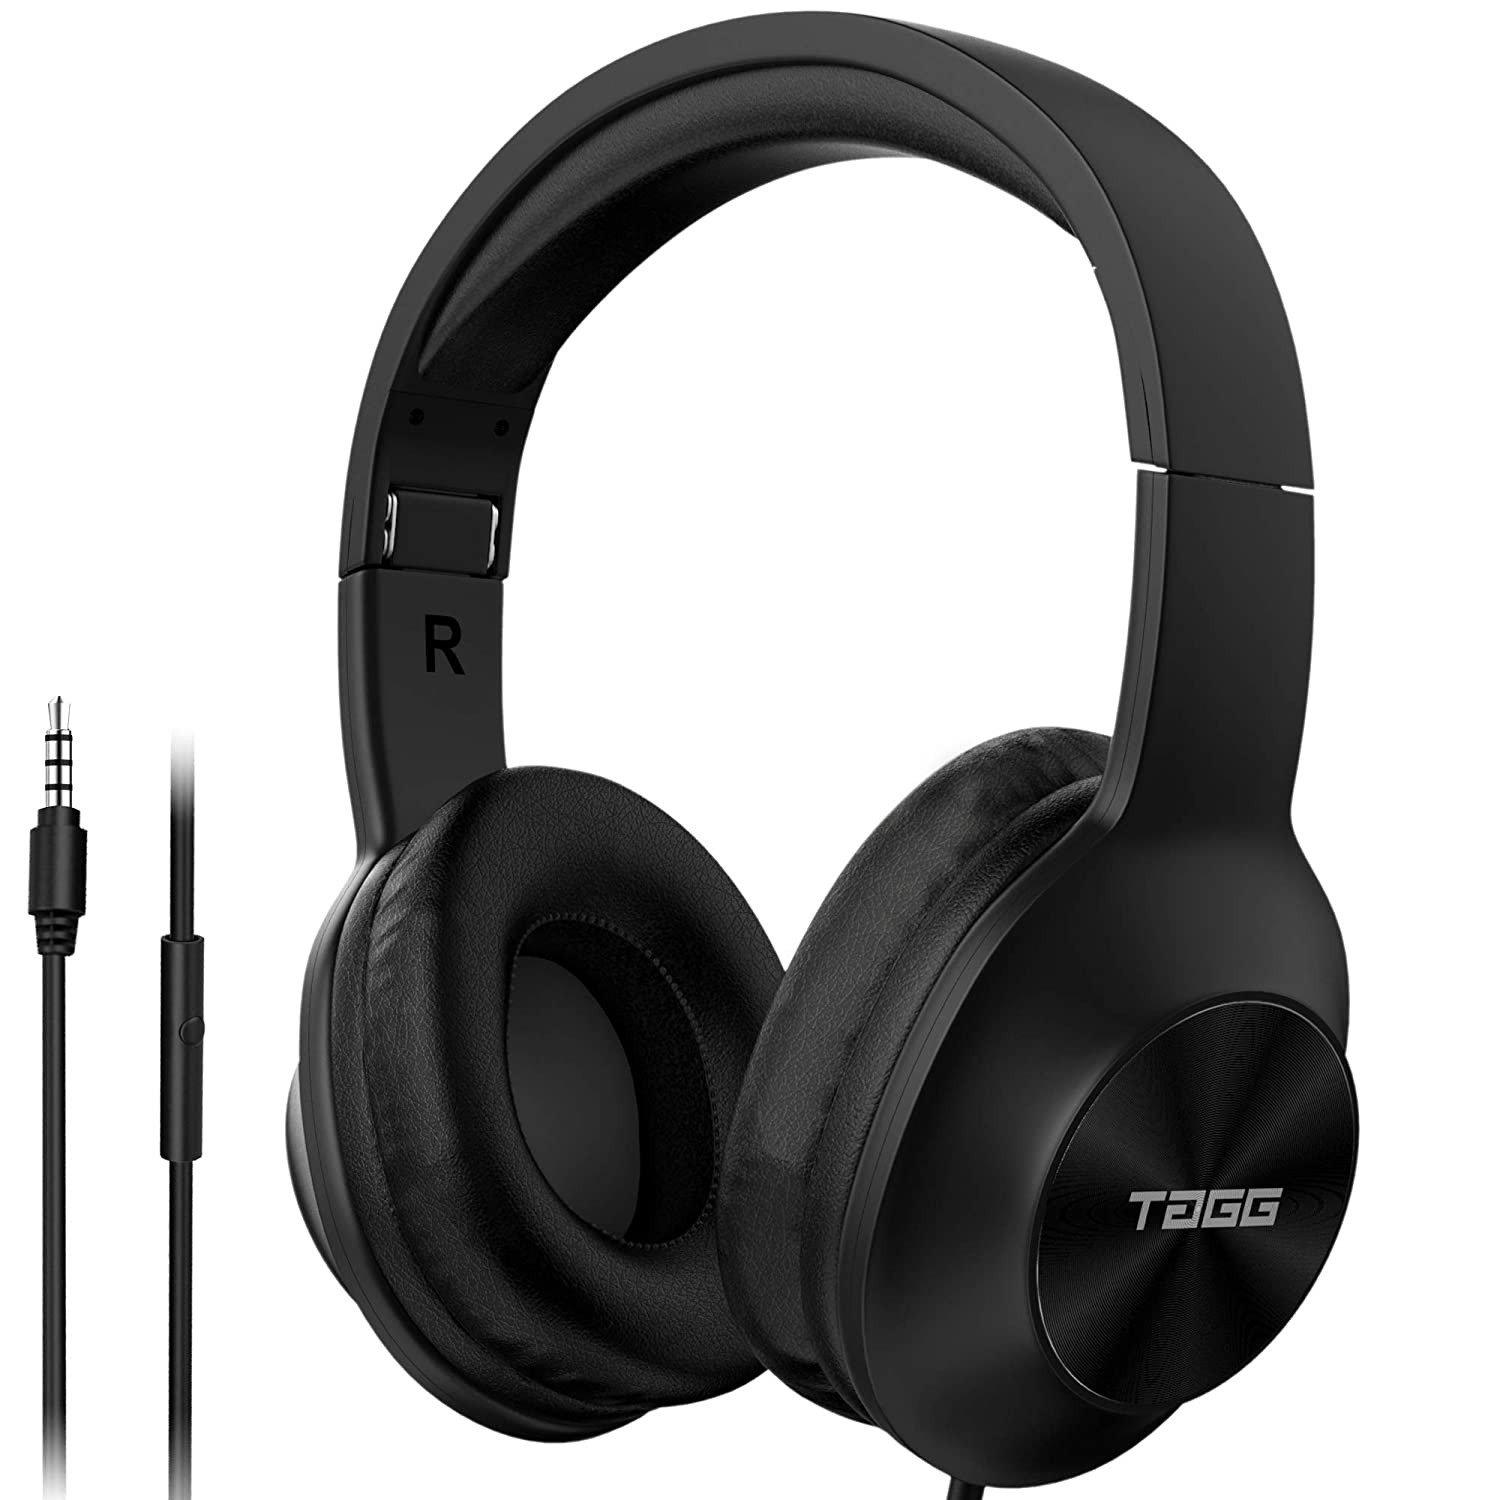 TAGG SoundGear 700 over Ear Wired Headphones with Built-in